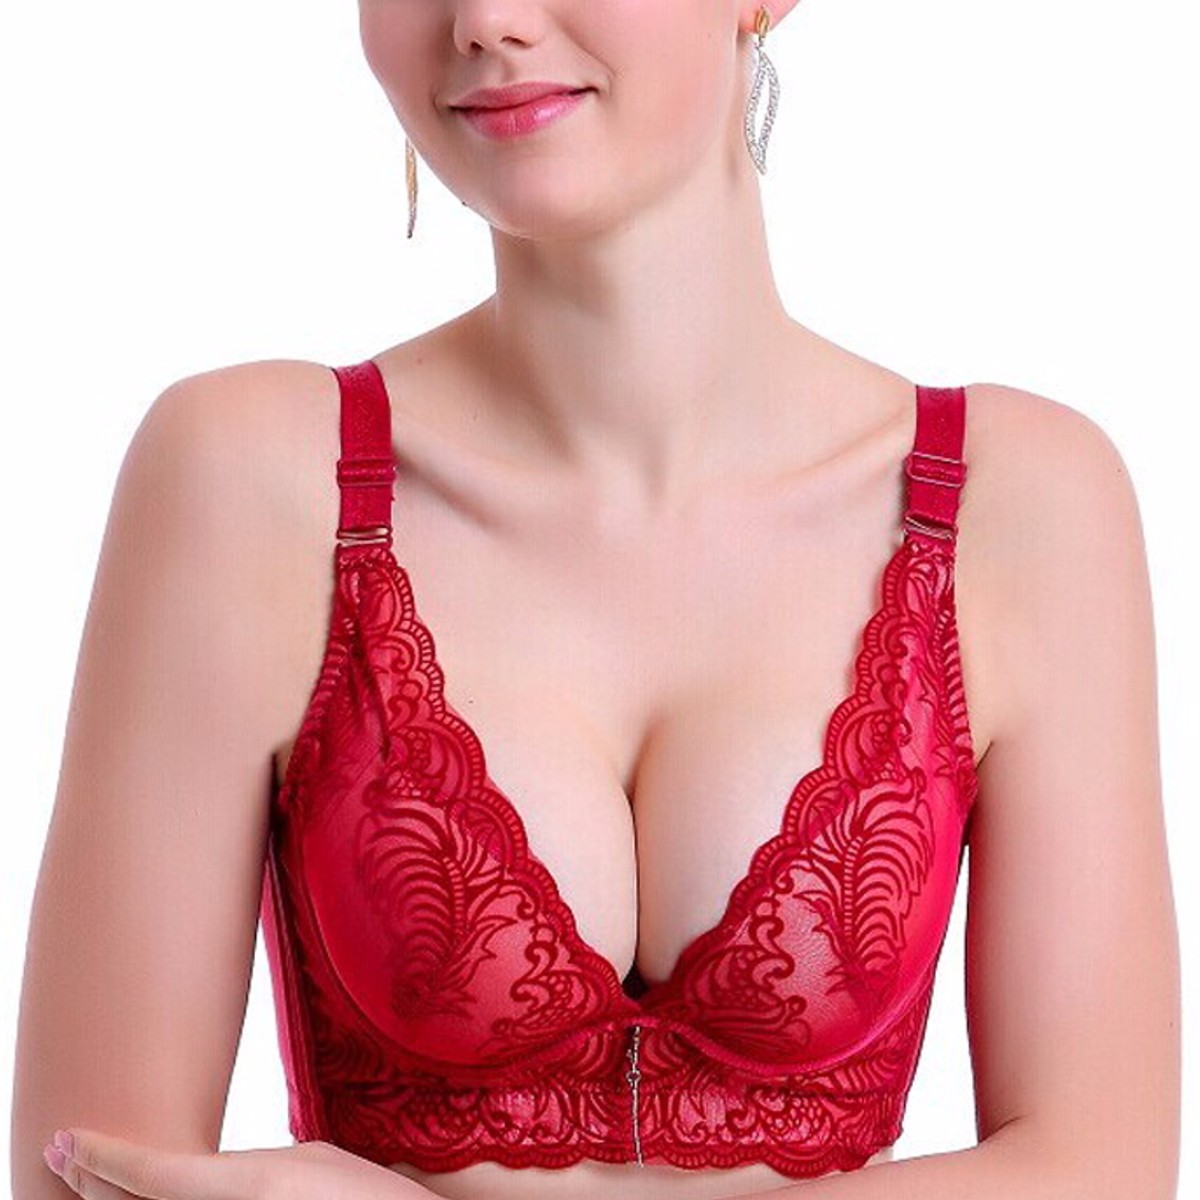 Lady Ultrathin Sexy Lace Bra Underwire 3/4 Cup Brassiere Women Push Up Gather Padded Bras Bustier Underwear 34/36/38/40 B Cup(China (Mainland))